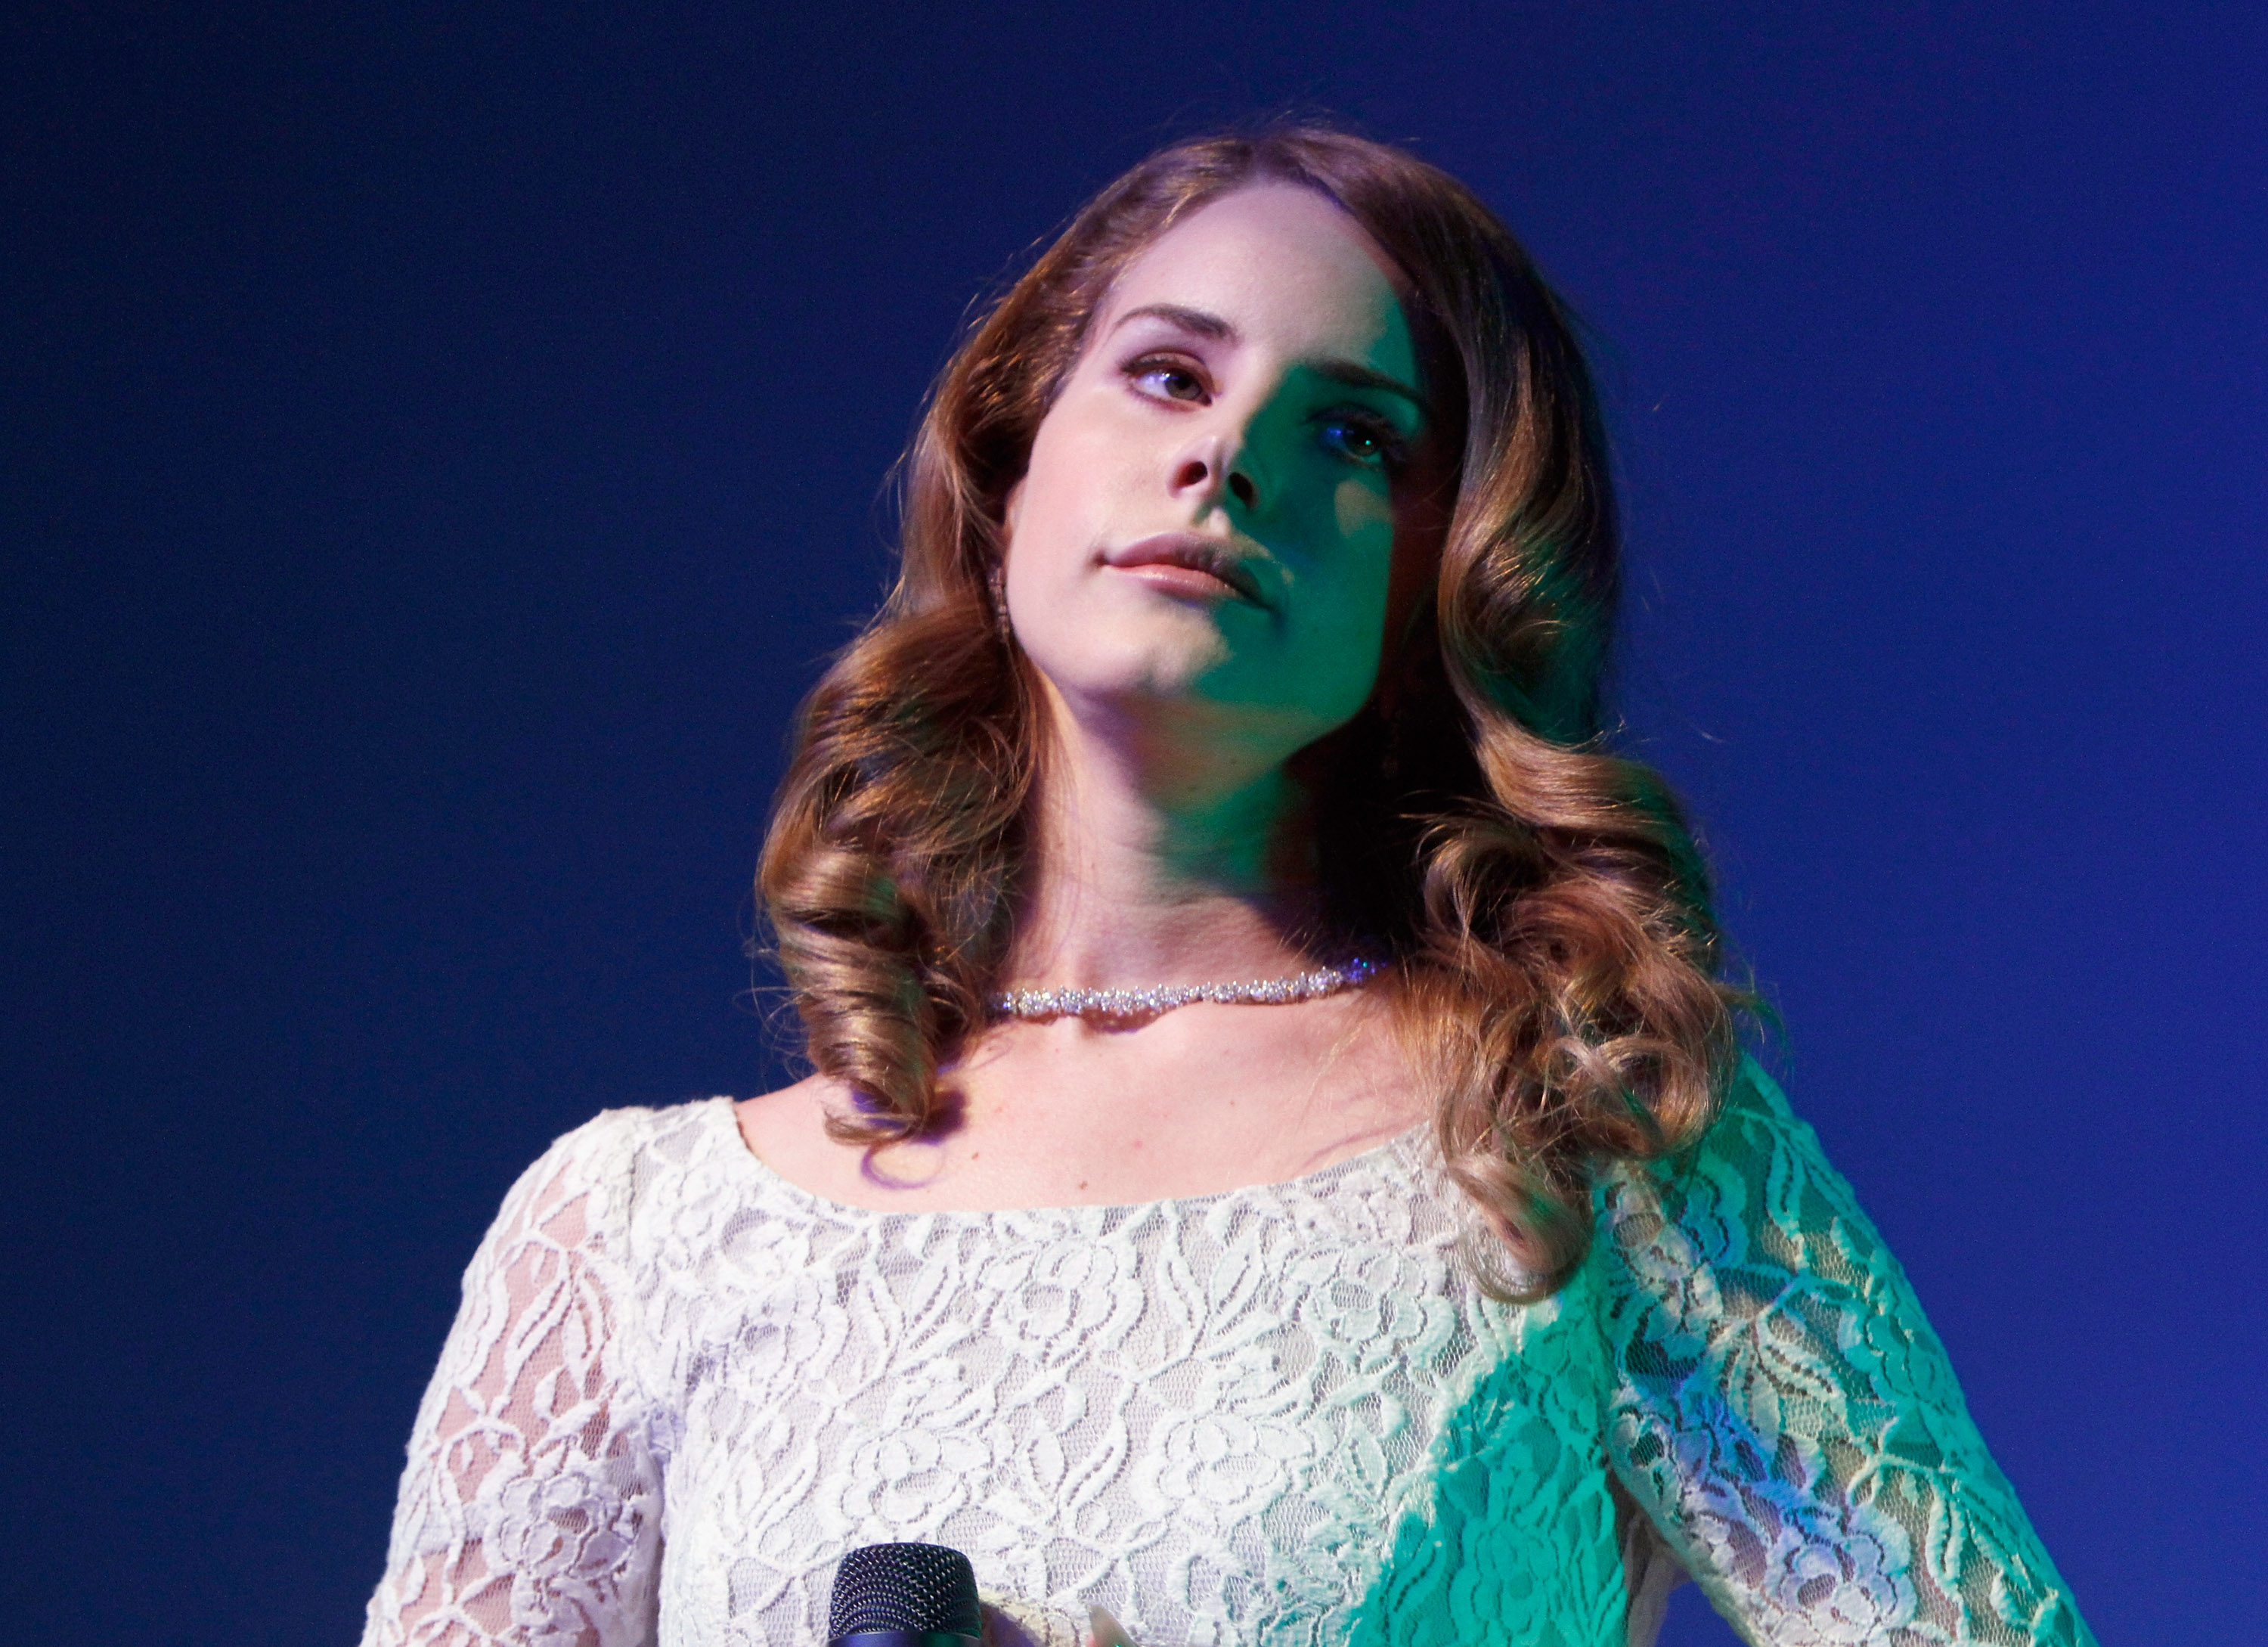 free online personals in del rey Find single alternative people who are fans of lana del rey and other similar bands at altscene, the totally free goth, punk and emo dating site.